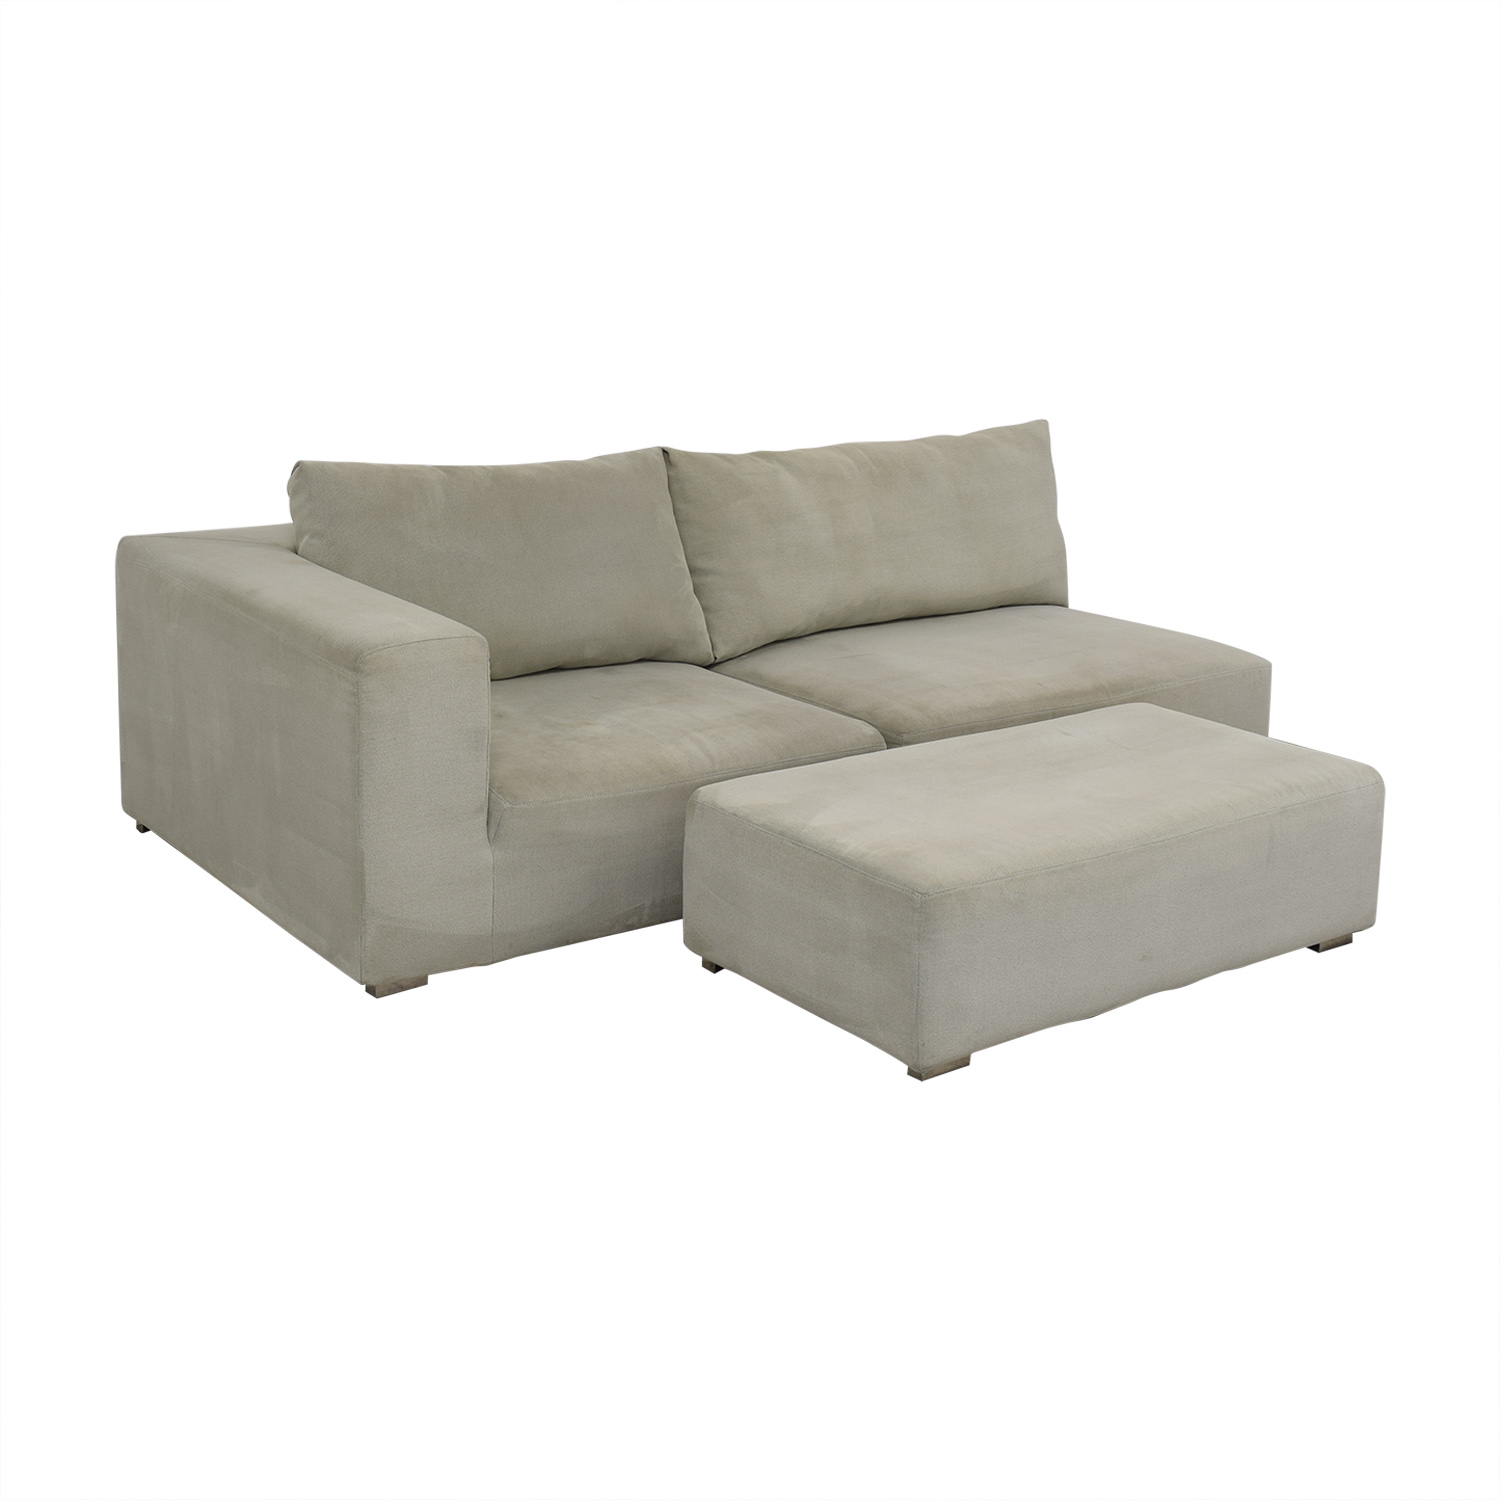 69% OFF - Chaise Sofa with Ottoman / Sofas